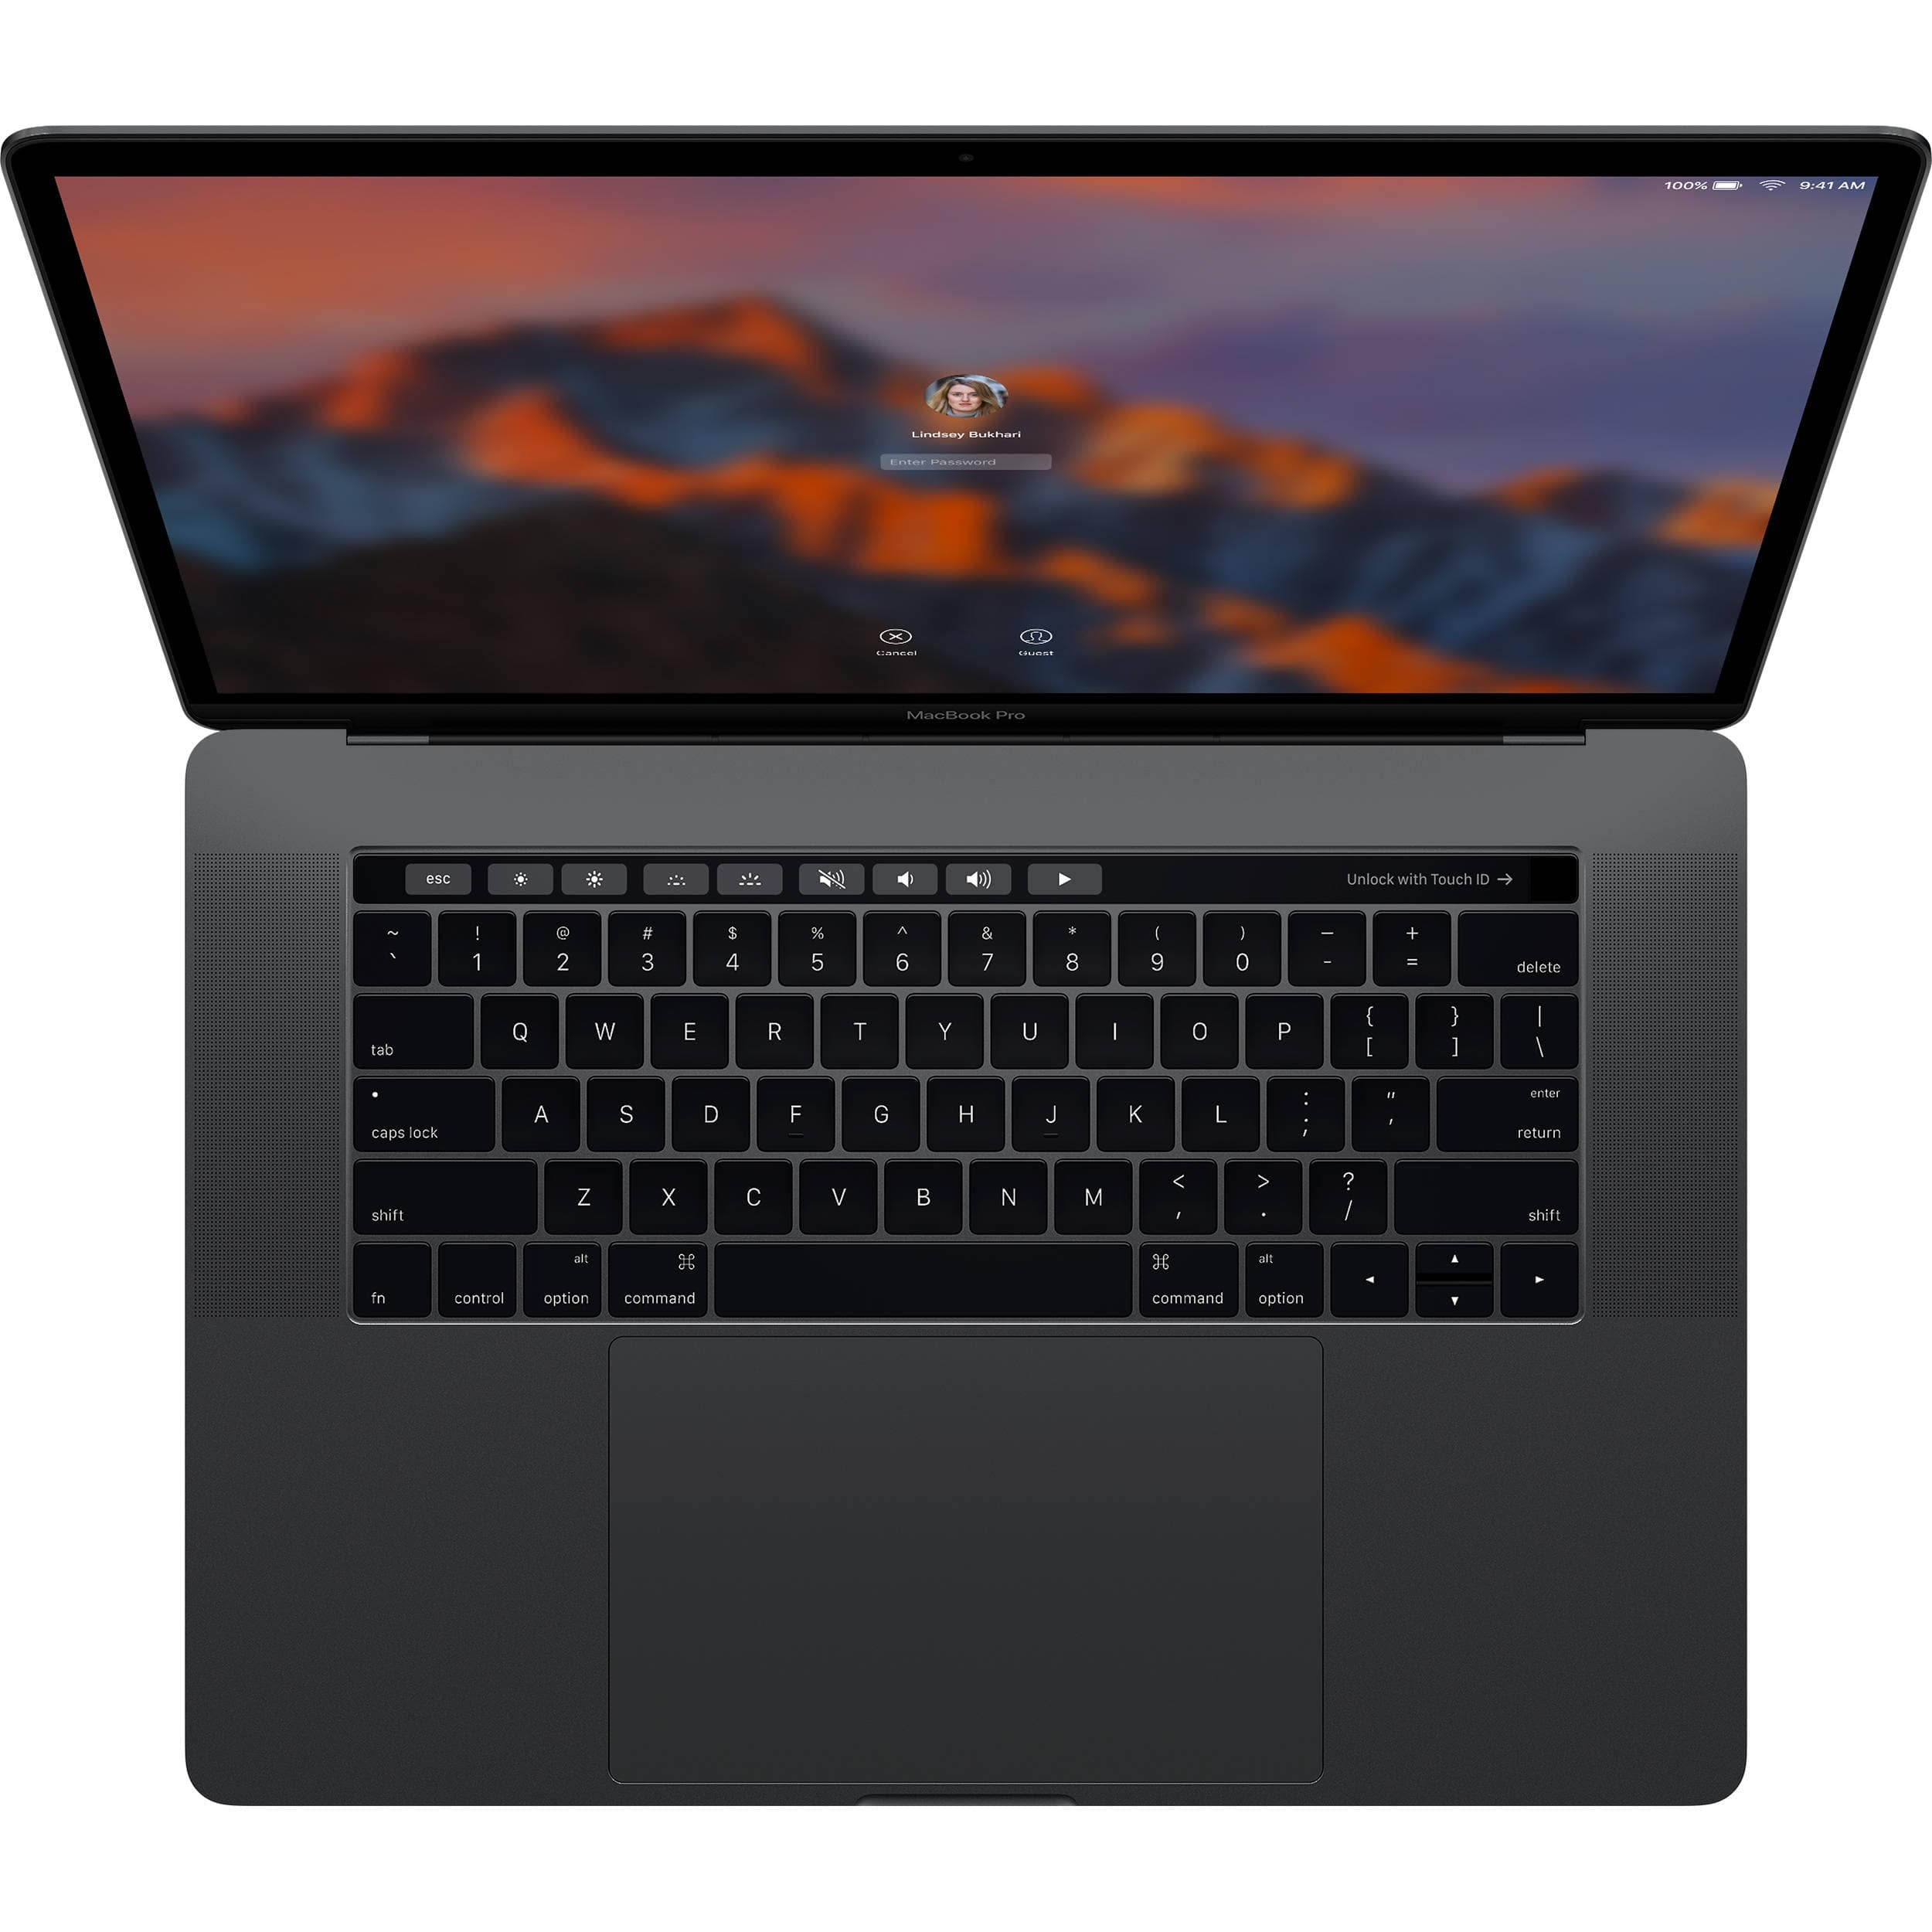 Apple 15 macbook pro with touch bar for 1 799 600 off with no